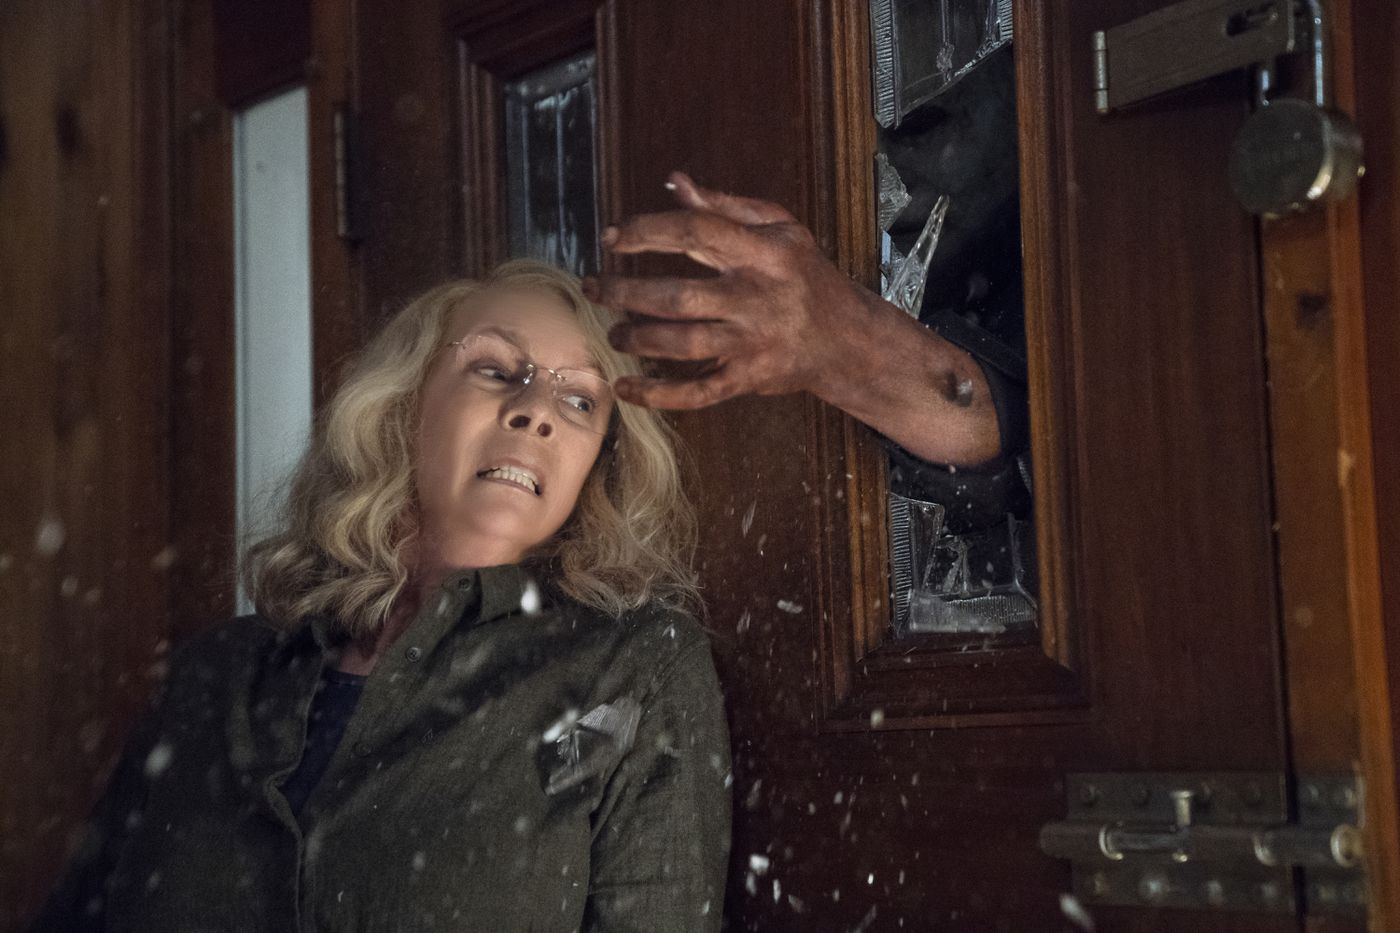 Halloween 2018 review: Why Michael Myers is still terrifying